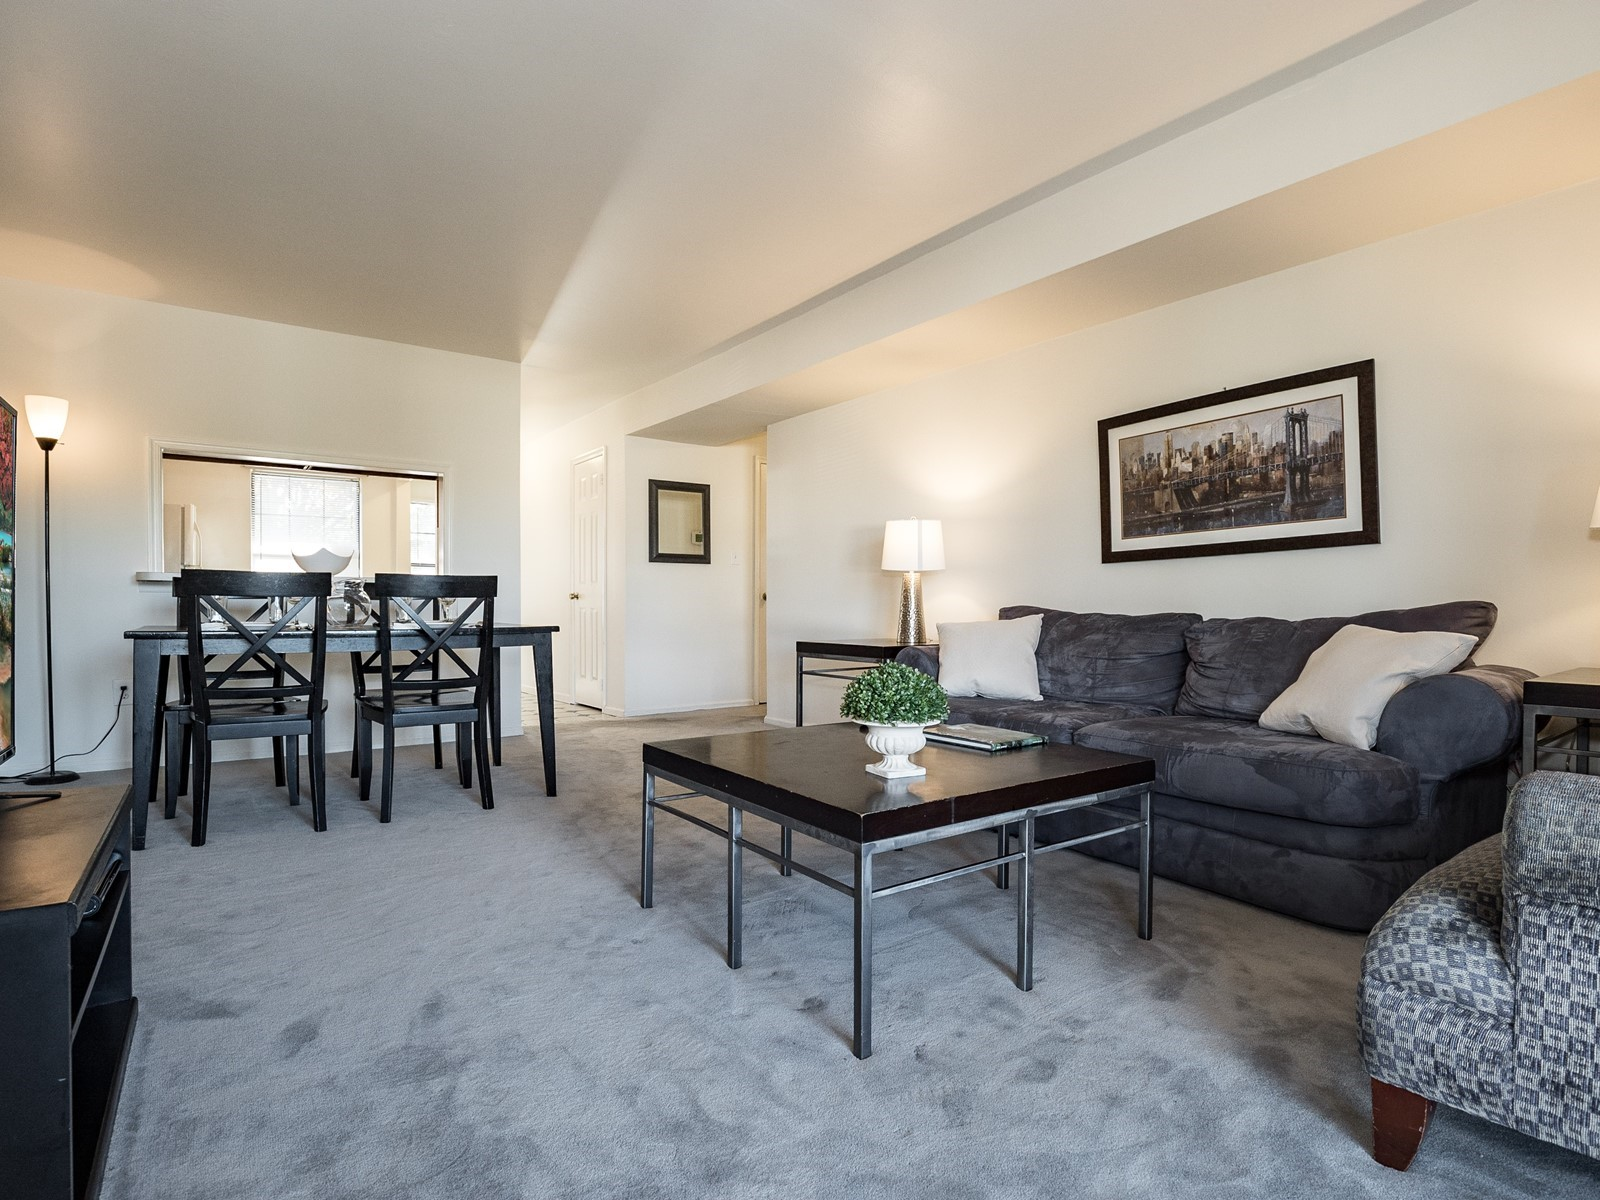 Woodbridge 404 Furnished Apartment living room with large sofa, chair and view to dining area